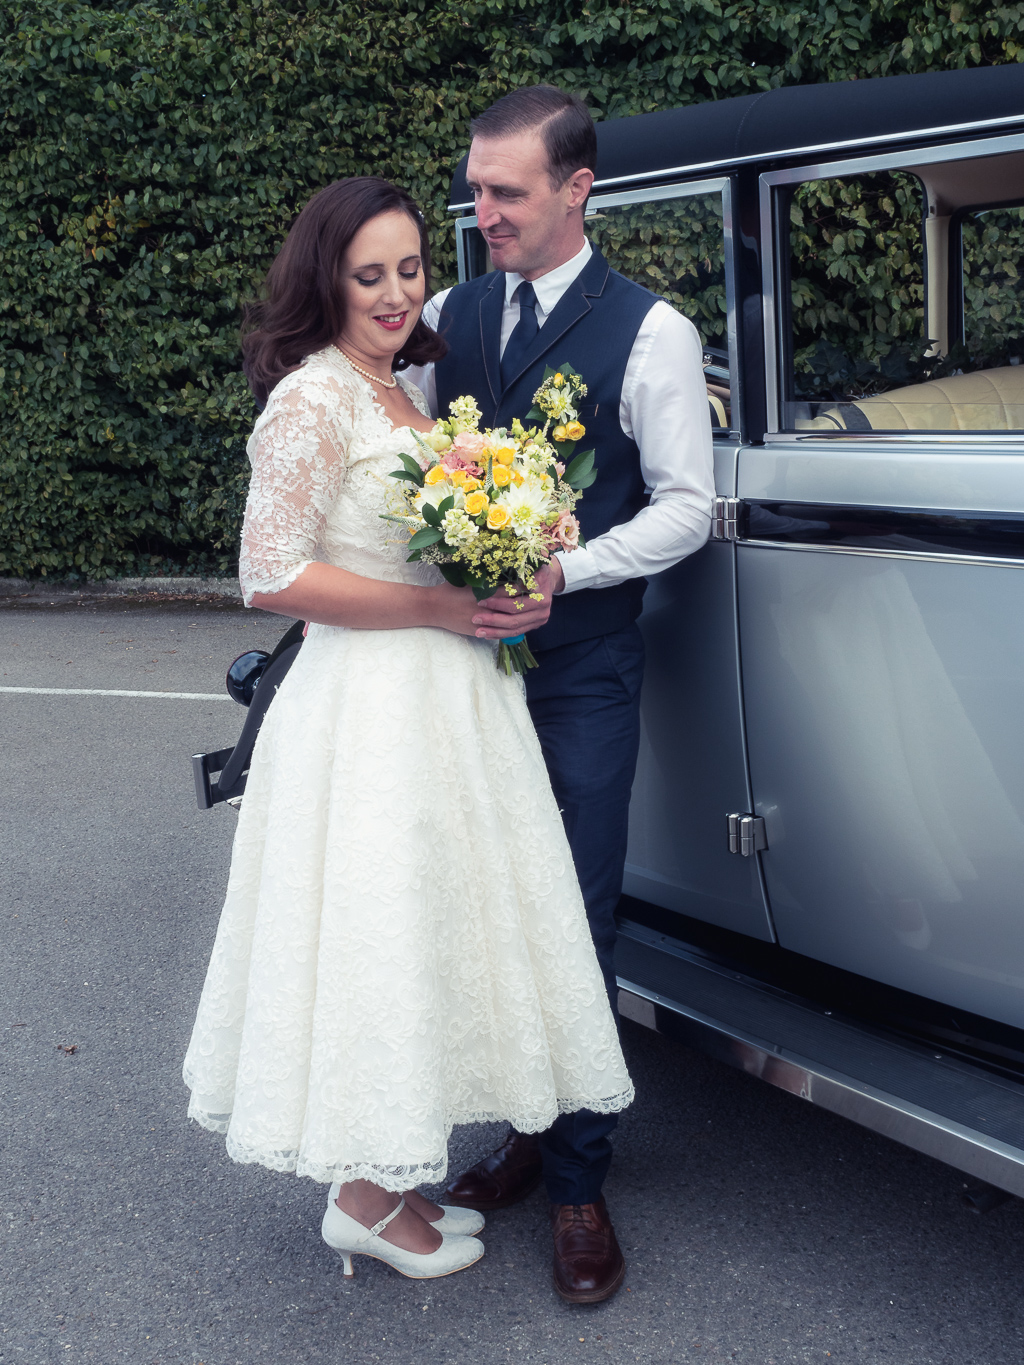 Traditional vintage styled wedding photoshoot at The Orangery Suite, photographer credit Dom Brenton Photography (47)